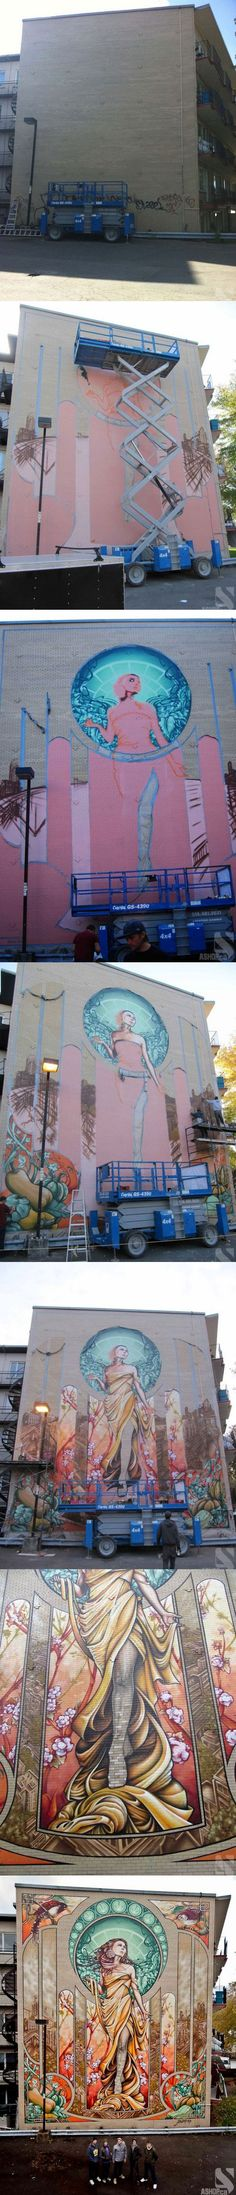 """Wall mural in Montreal by graffiti group """"A'Shop"""""""